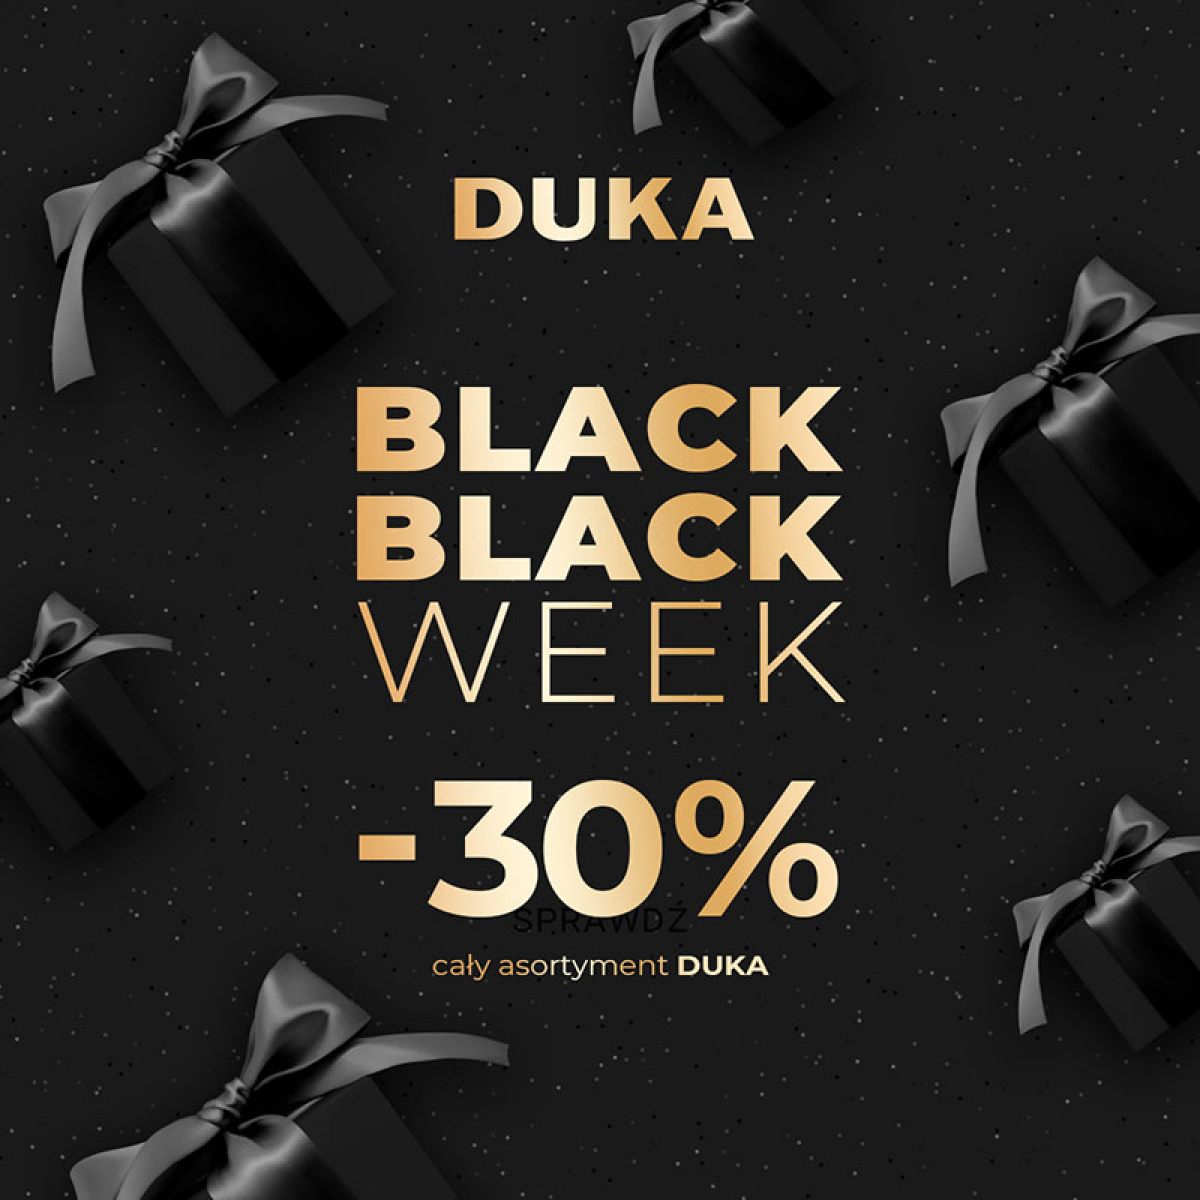 BLACK BALCK WEEK DUKA